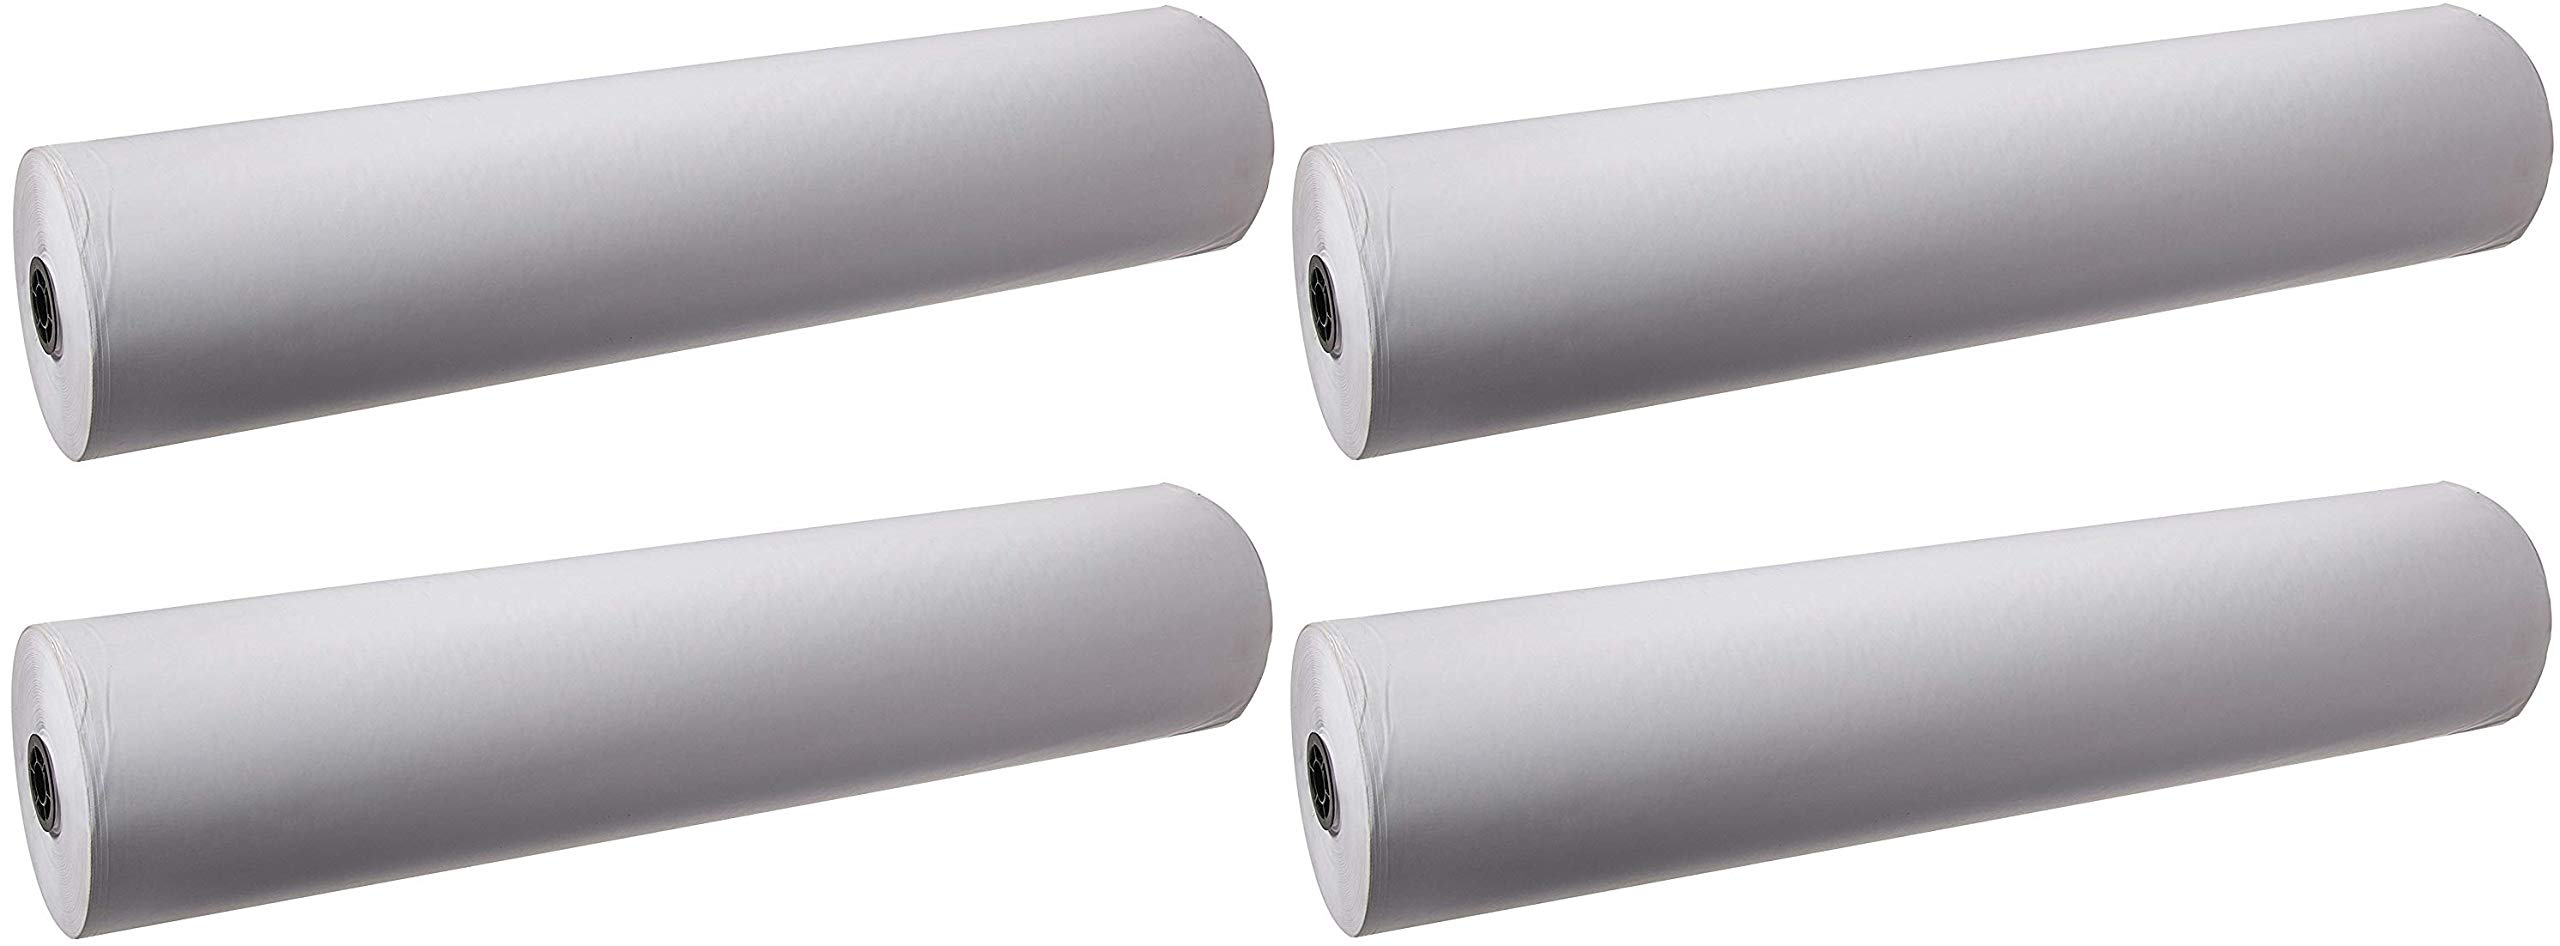 School Smart Butcher Kraft Paper Roll, 50 lb, 36 Inches x 1000 Feet, White (Pack of 4) by School Smart (Image #1)